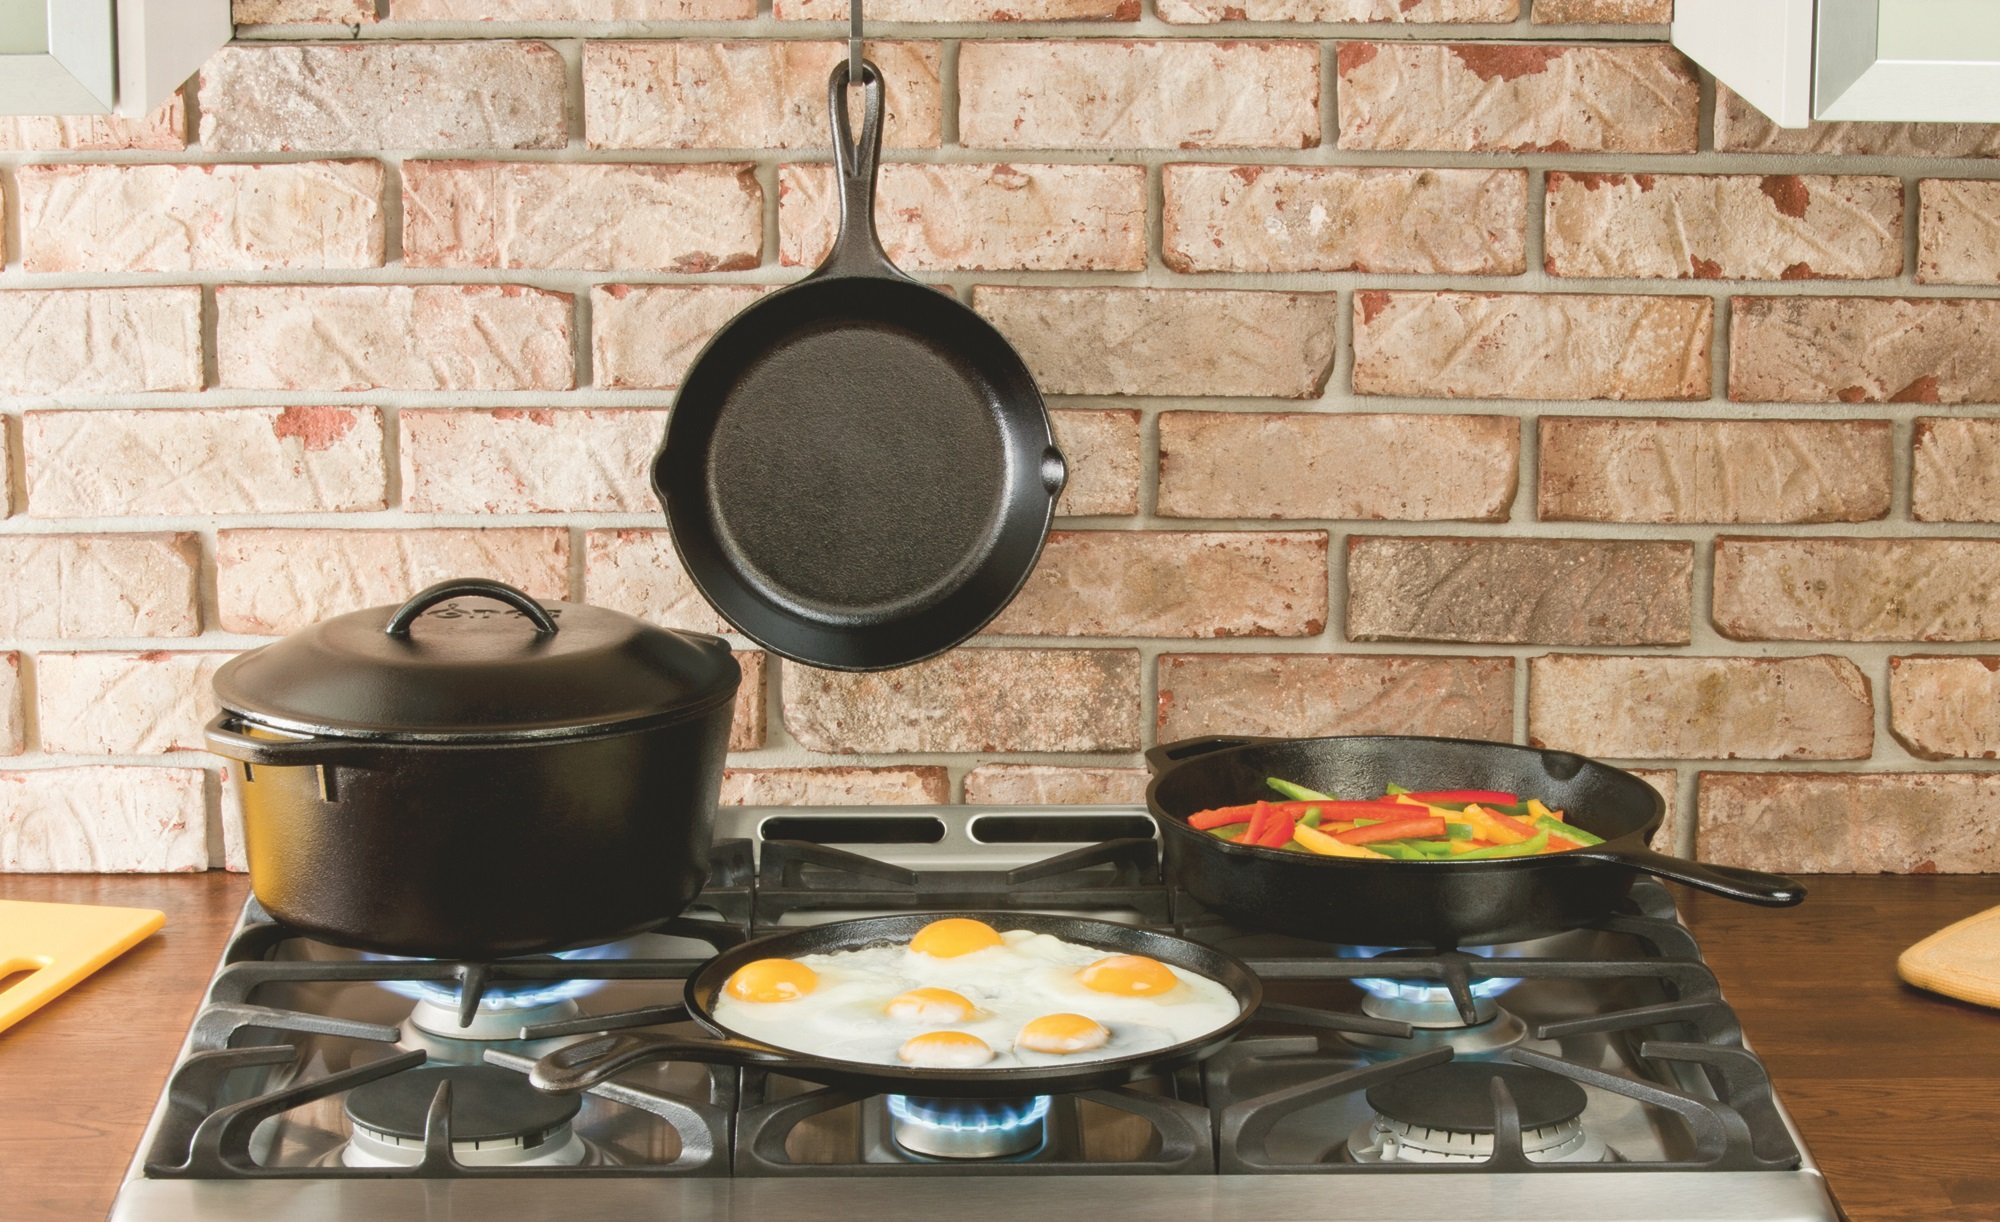 Lodge 10.5 Inch Cast Iron Griddle. Pre-seasoned Round Cast Iron Pan Perfect for Pancakes, Pizzas, and Quesadillas. by Lodge (Image #4)